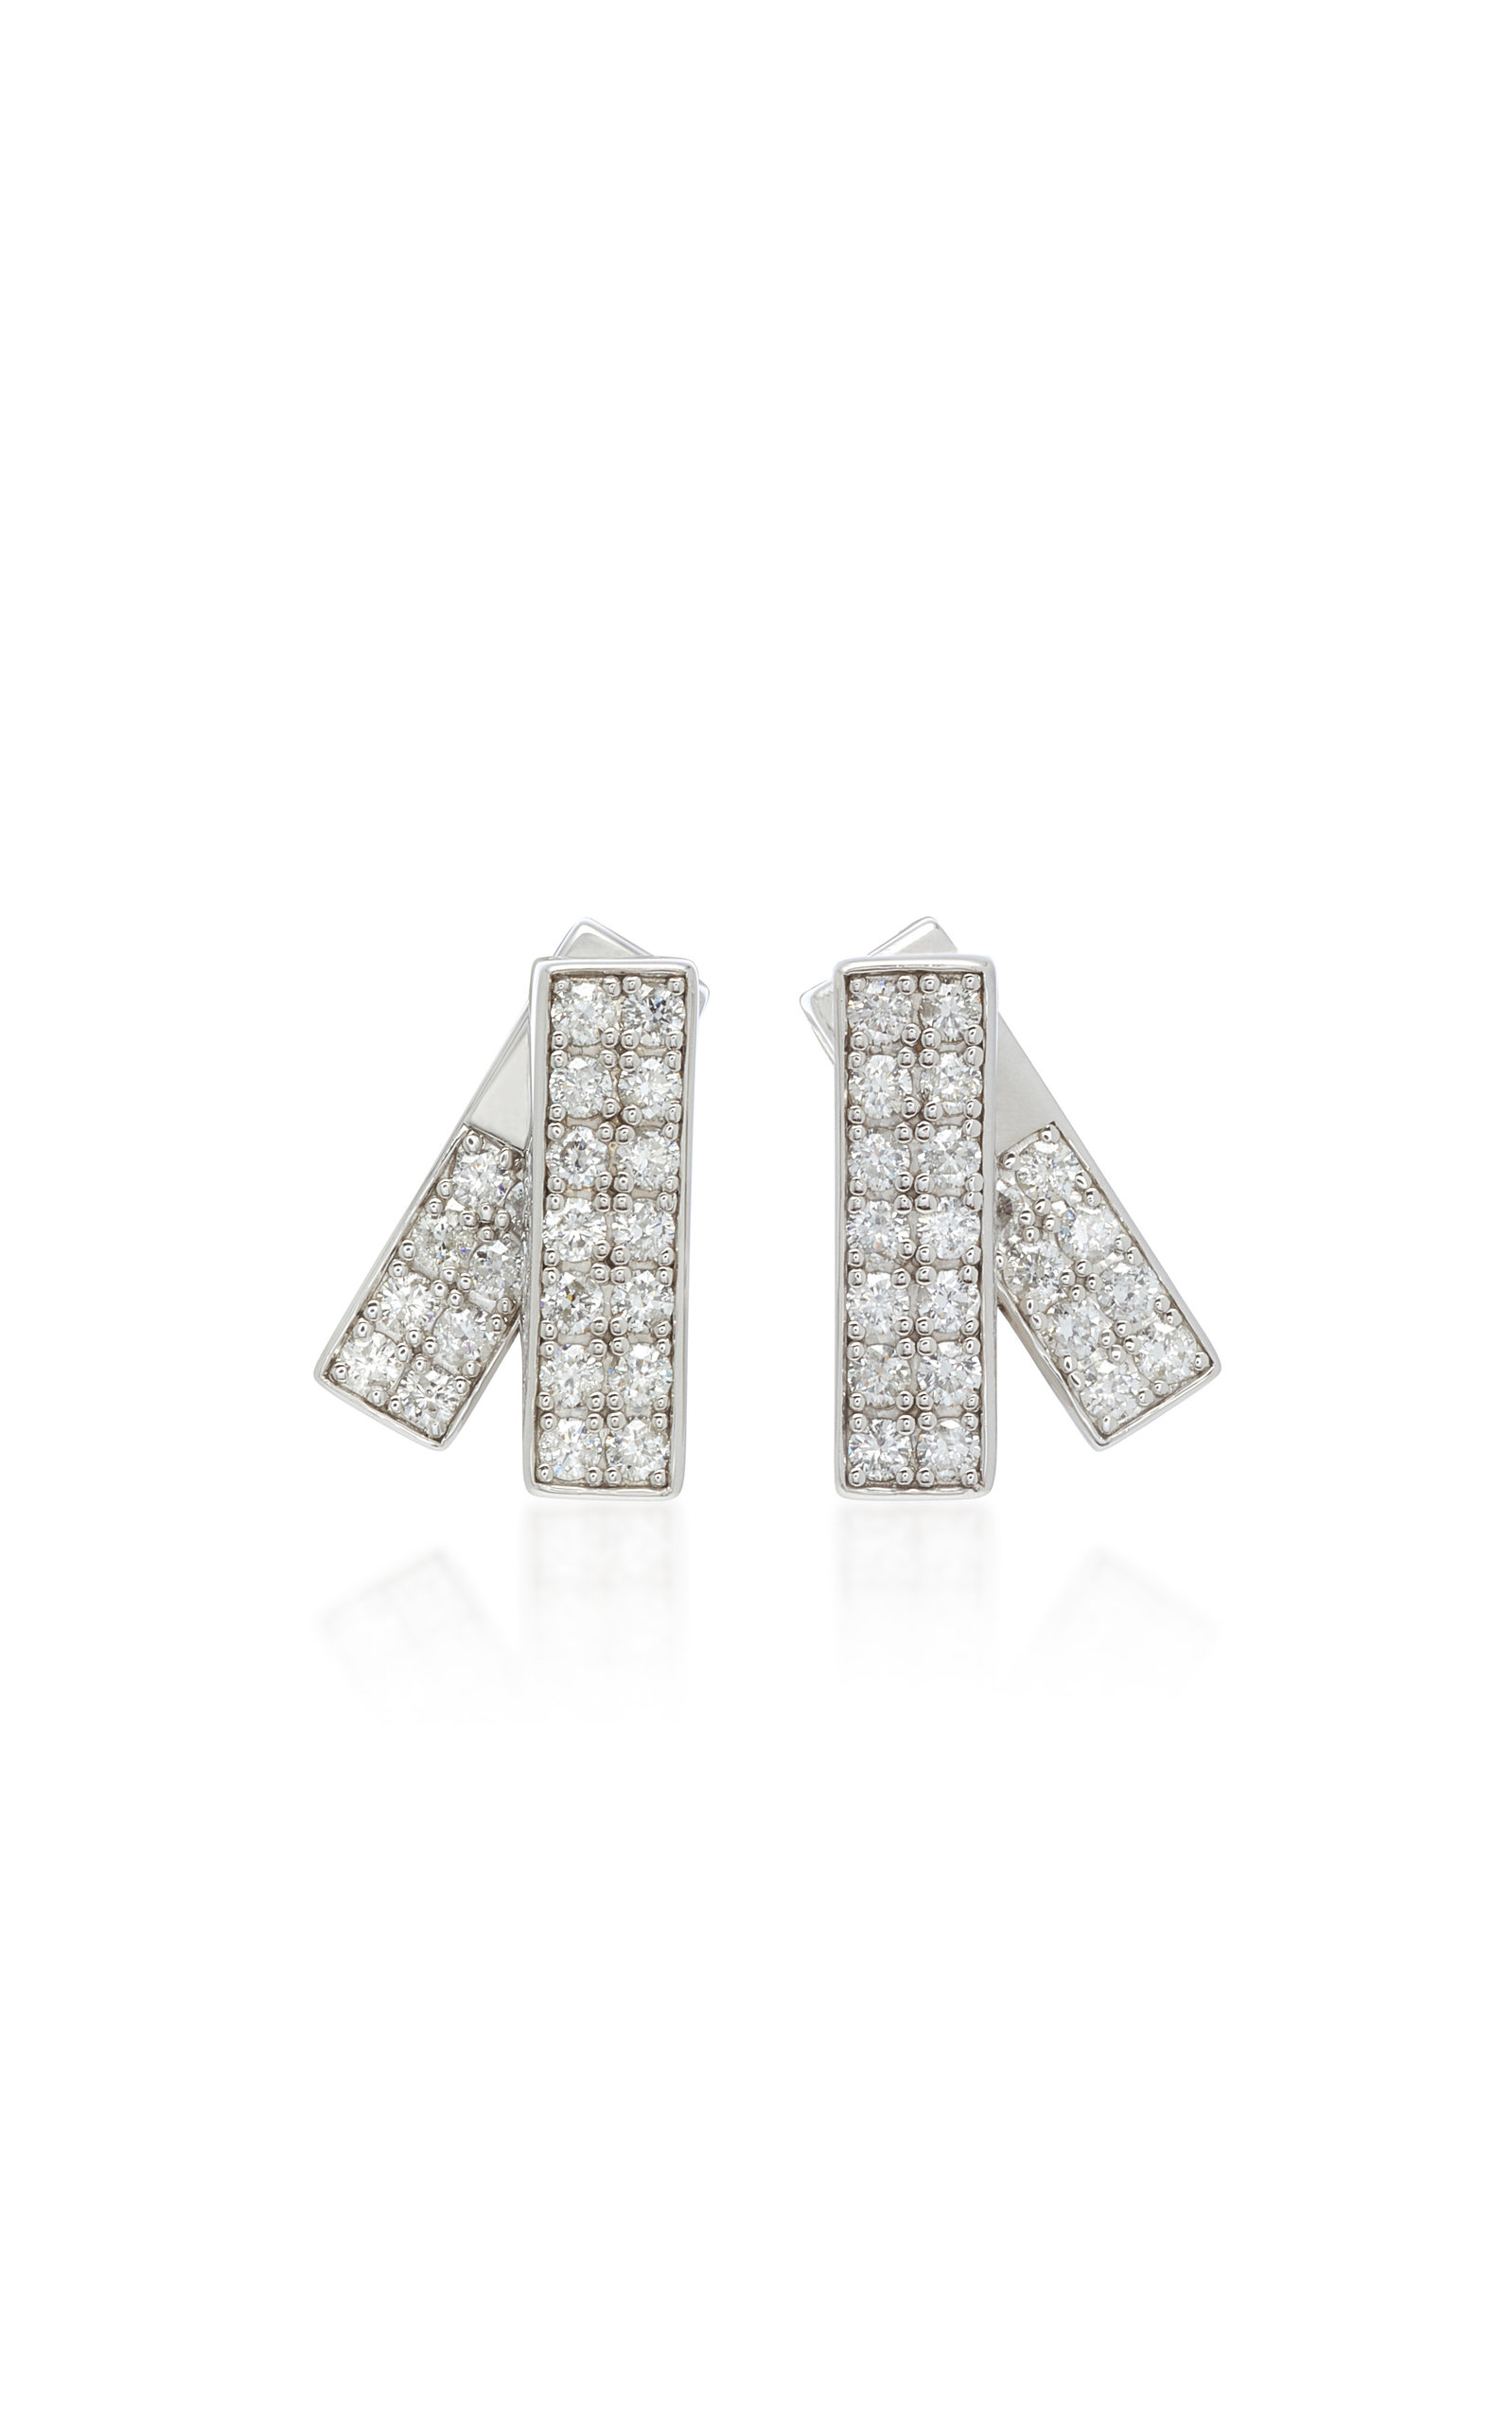 LYNN BAN JEWELRY Insignia Sterling Silver And Diamond Earrings in White